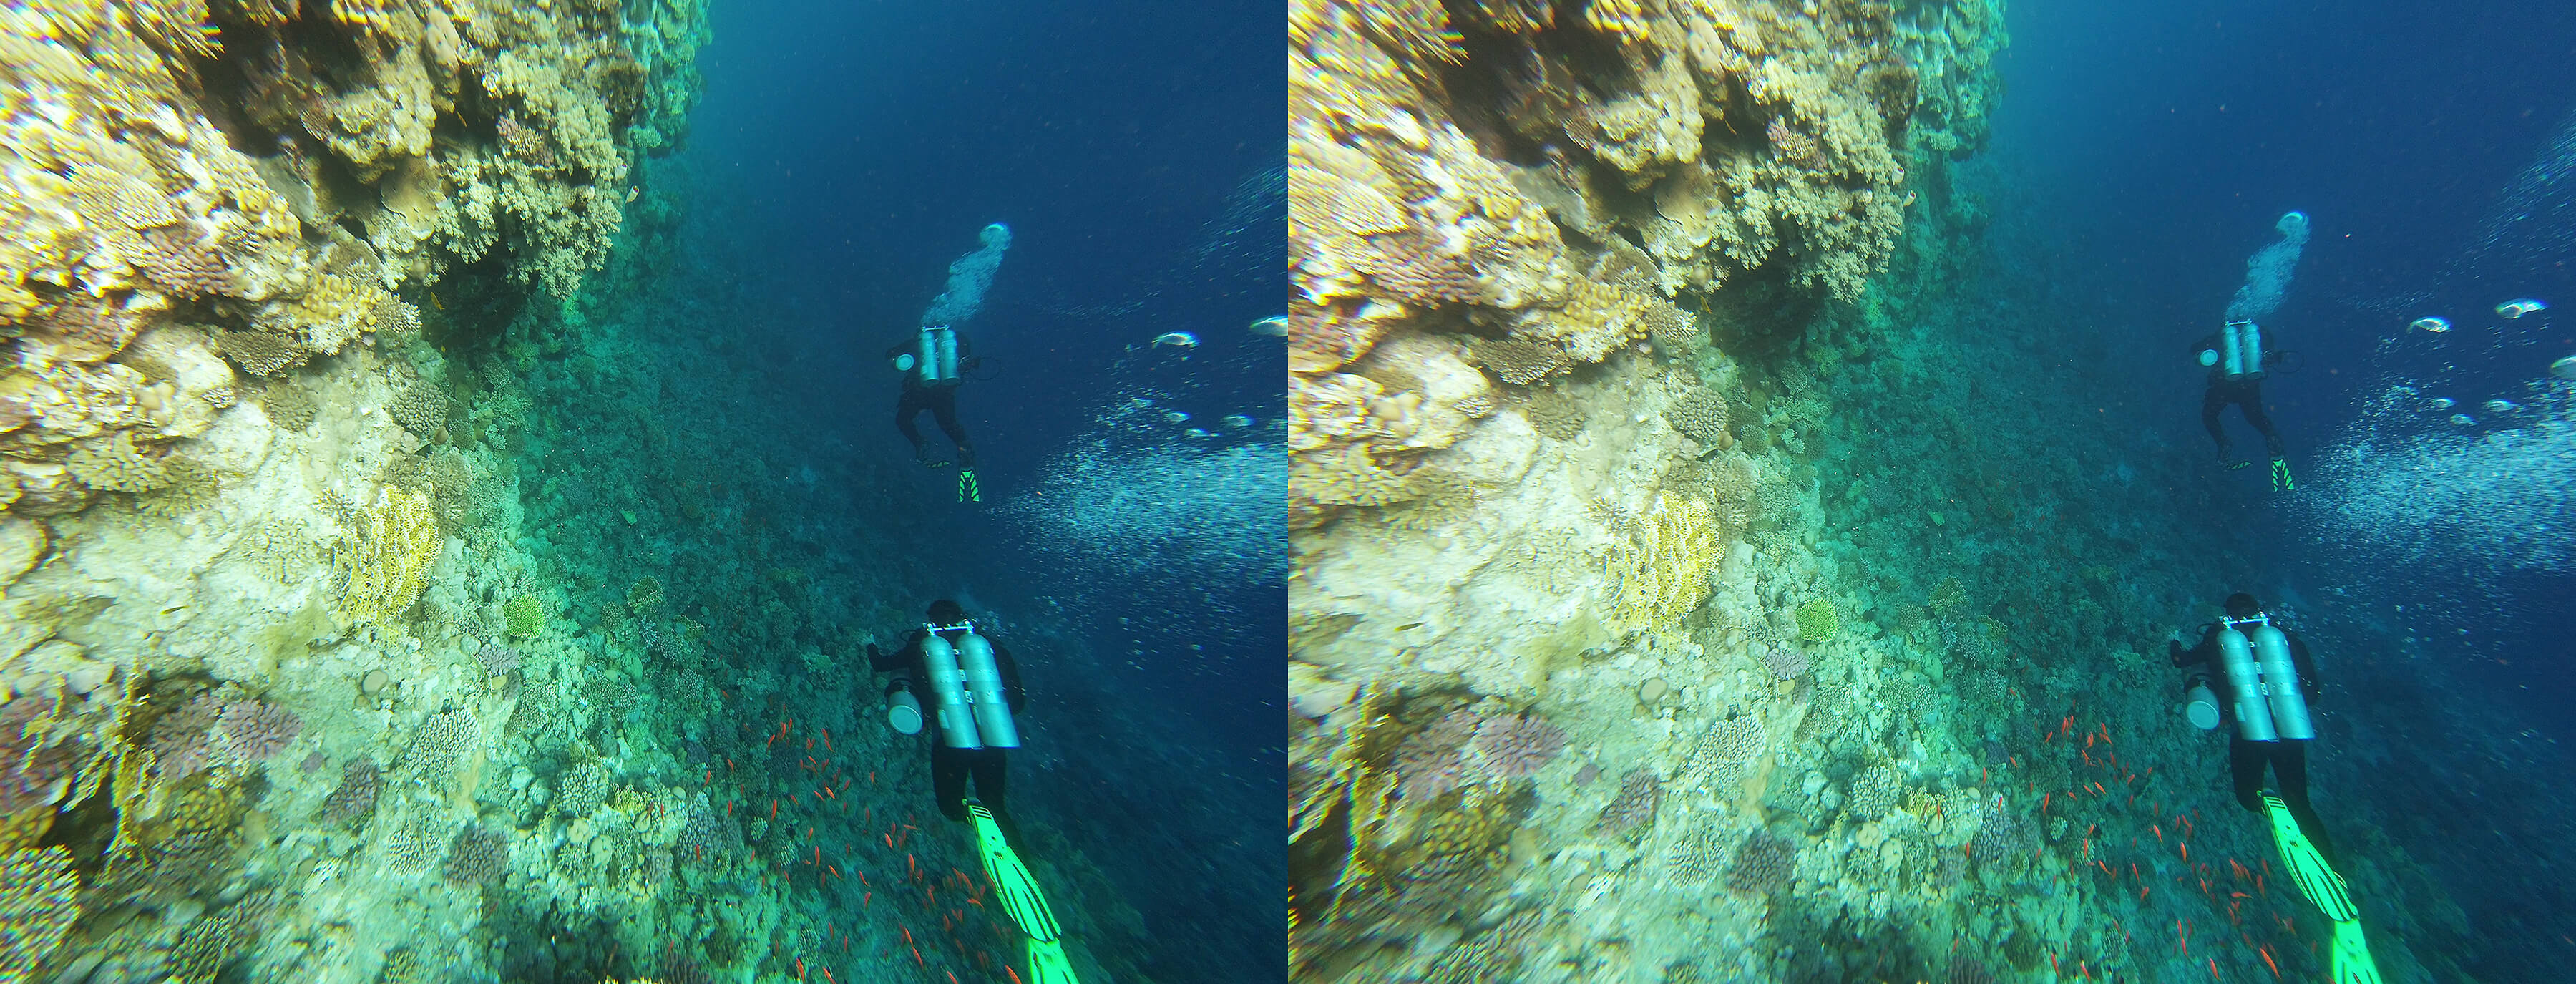 Diving on the Red sea - google cardboard VR